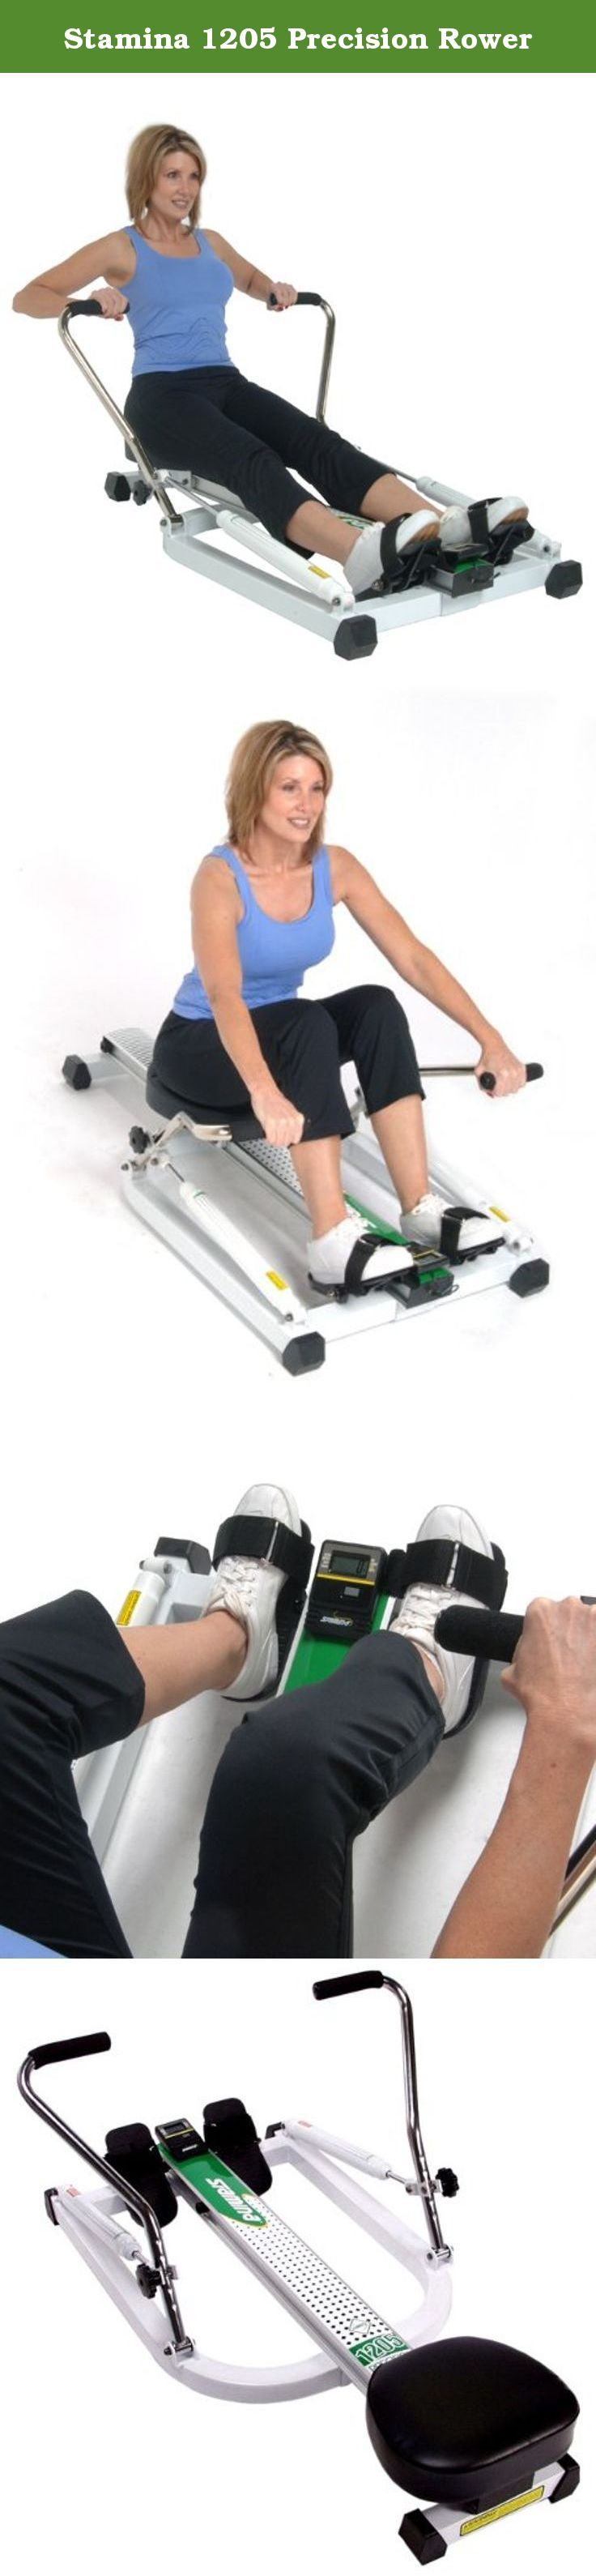 Stamina 1205 Precision Rower. Provides a low-impact, full-body workout for professional-quality results at home Precision extruded aluminum beam and deluxe ball-bearing roller system Smooth piston hydraulic cylinder resistance for steady, quiet performance Adjustable tension controls Multi-function monitor displays speed, distance, time, number of strokes, calories burned, and mileage Pivoting foot plates for comfort and safety Thick, padded seat for optimum support Durable steel and...